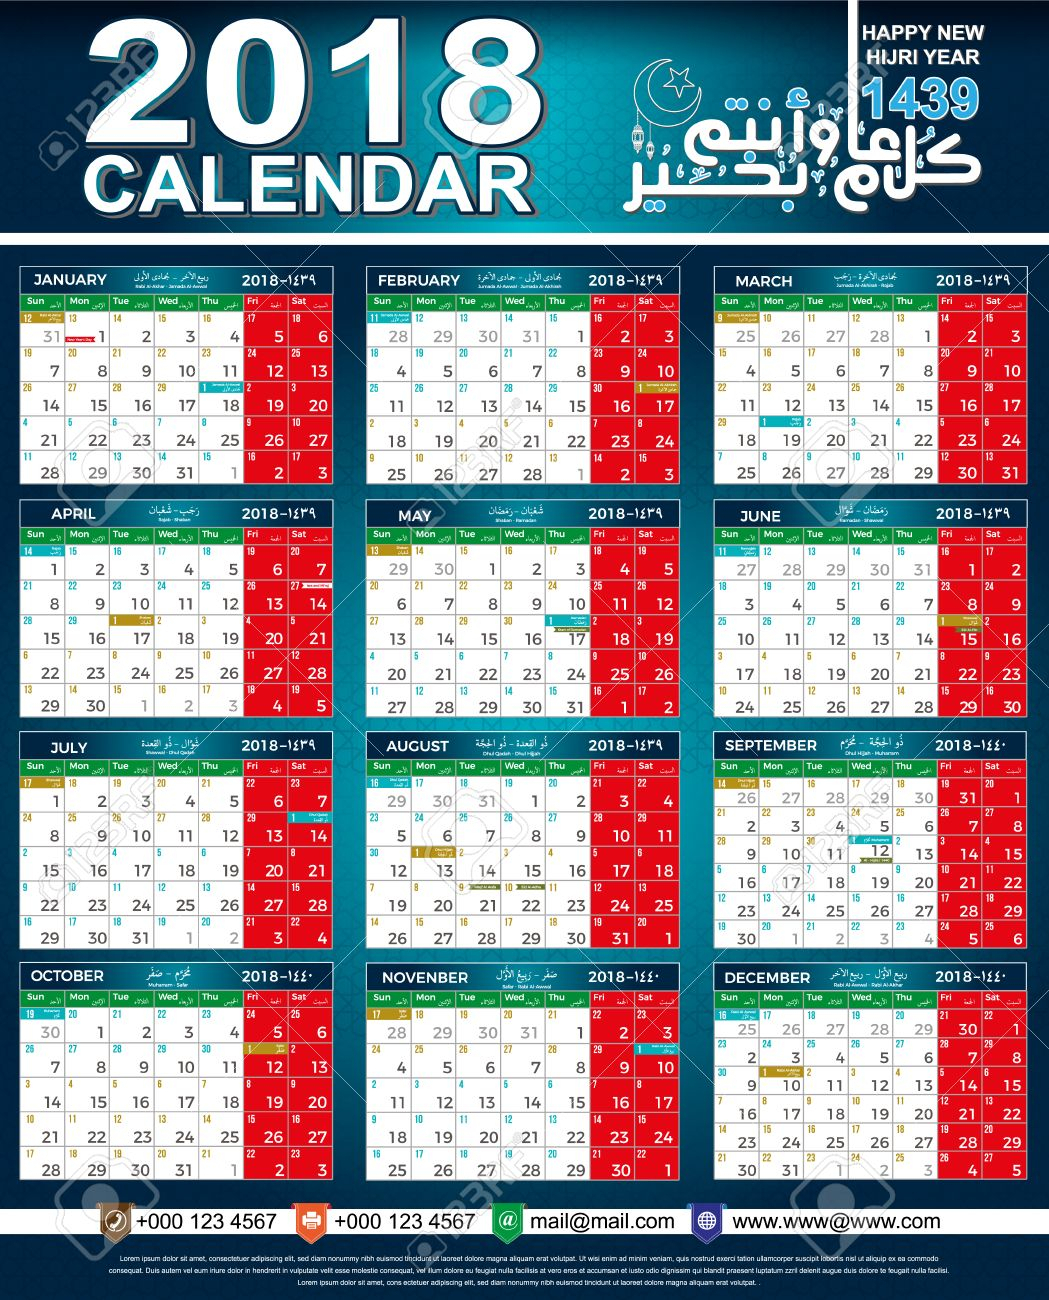 Calendar 2018 - Hijri 1439 Islamic - Arabic & English Dates -..